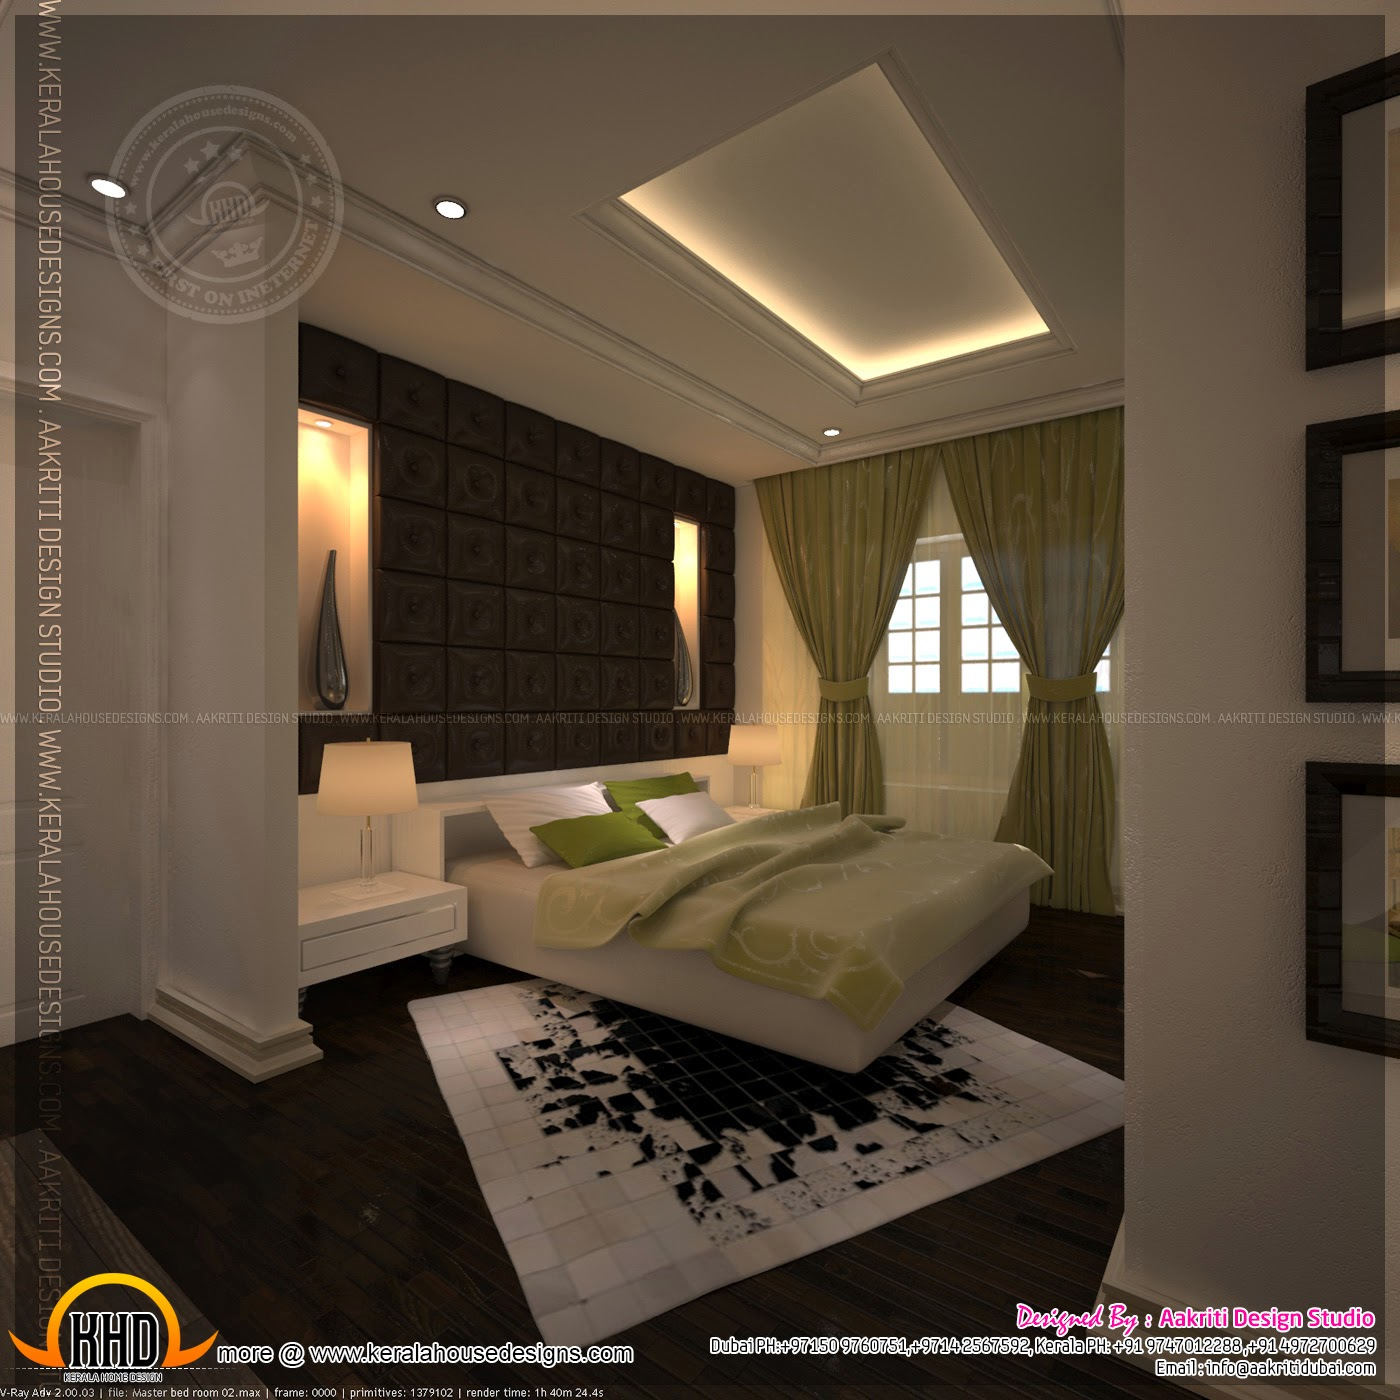 Master bedroom and bathroom interior design kerala home for Bedroom designs india